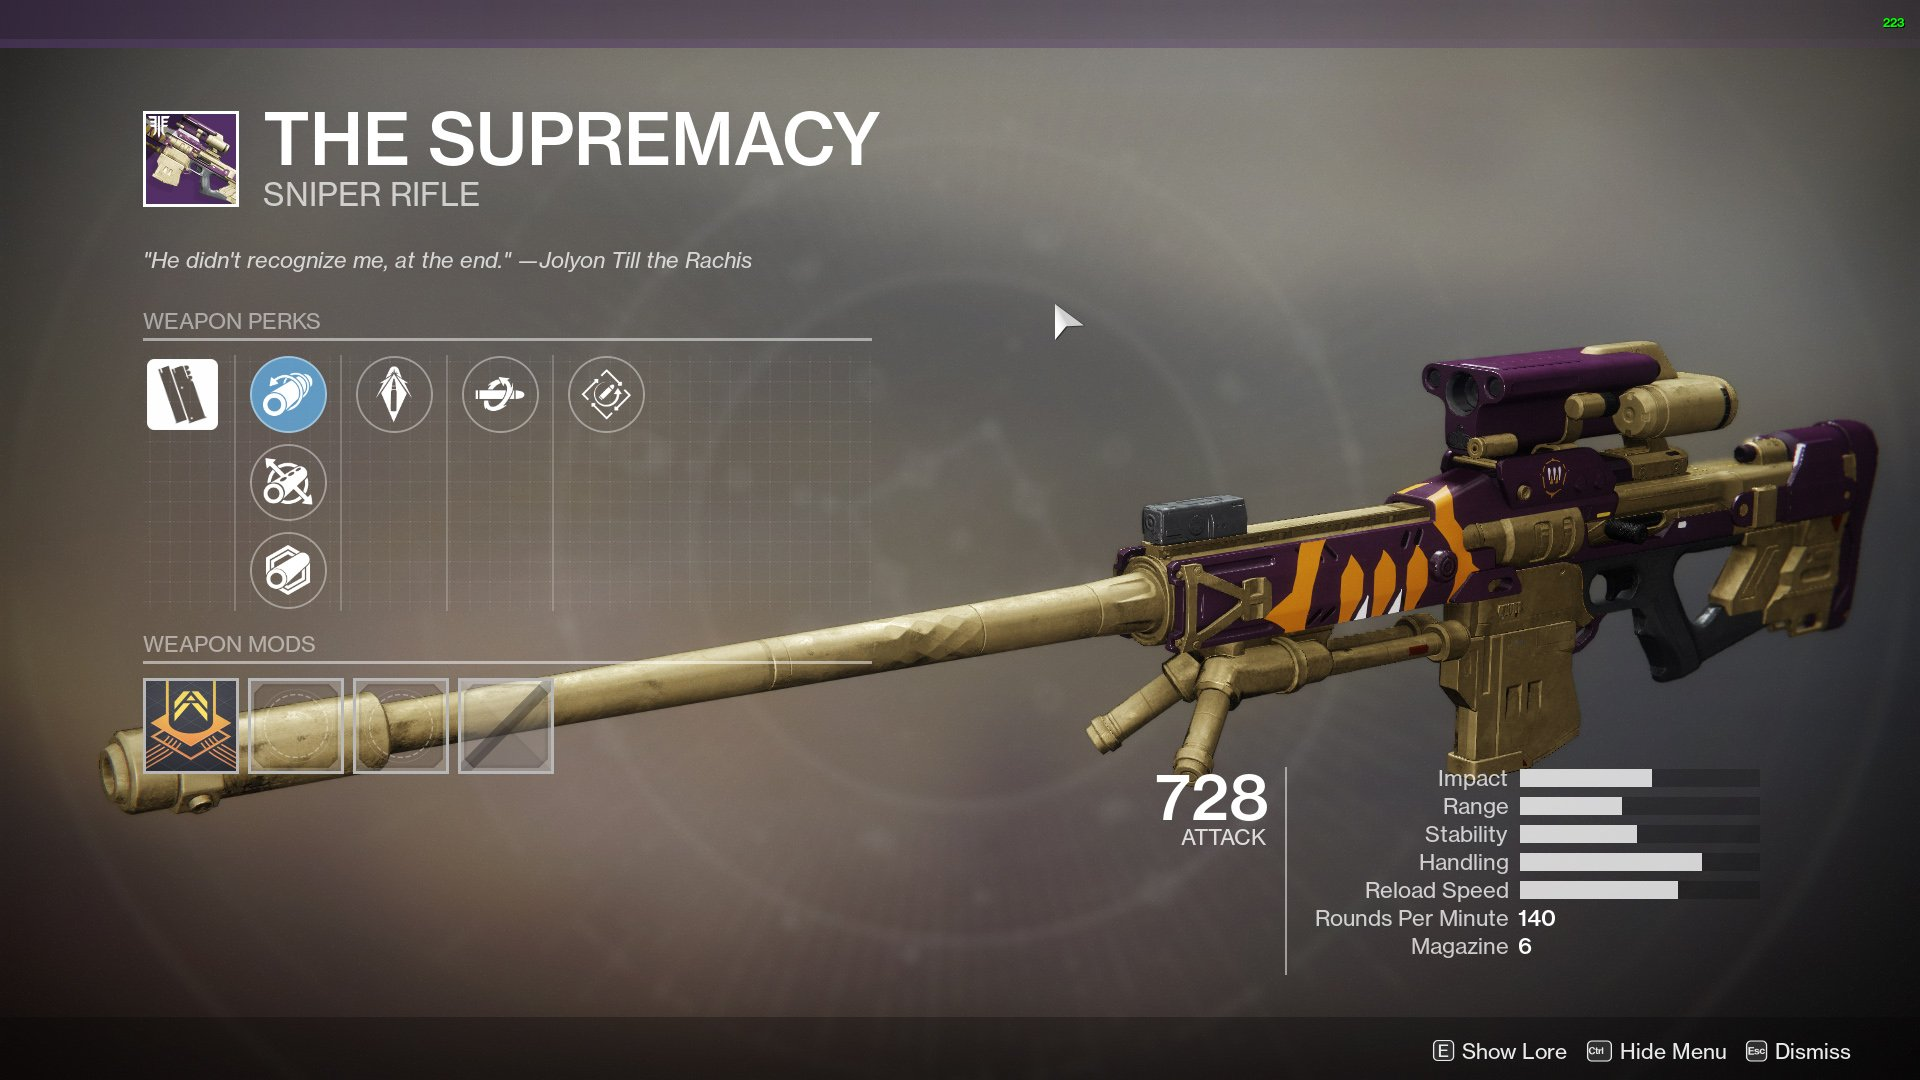 Destiny 2 sniper rifles